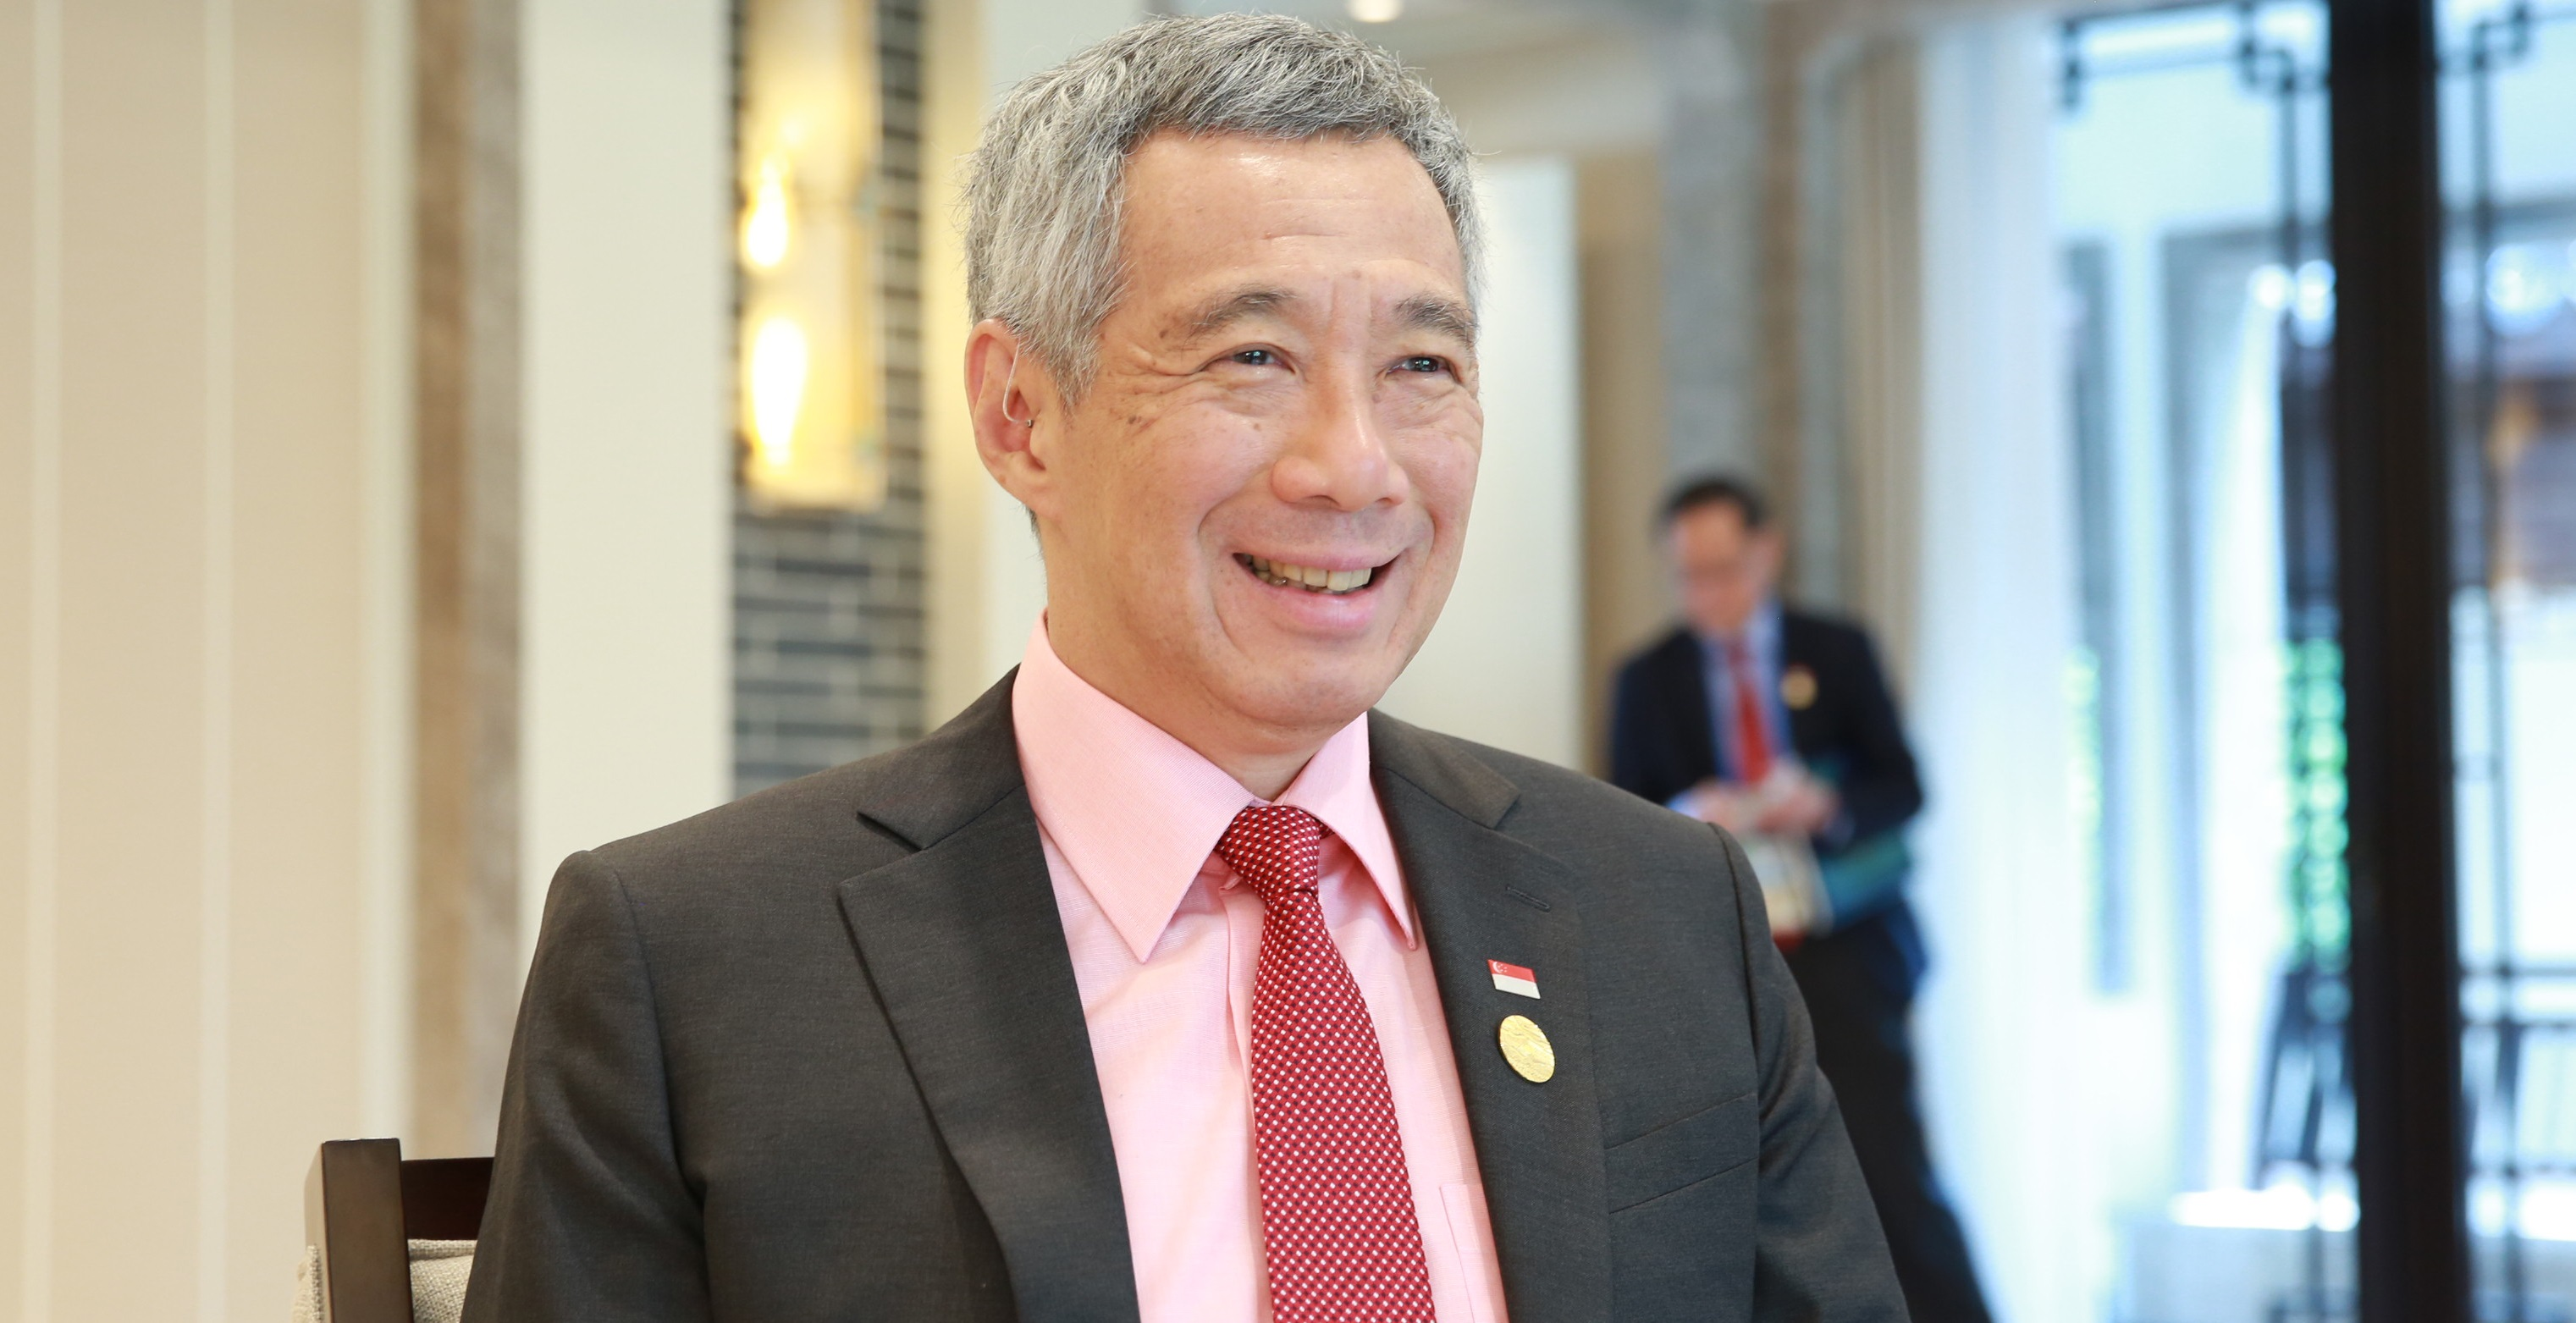 PM Lee launches national skills framework to develop logistics sector in Singapore